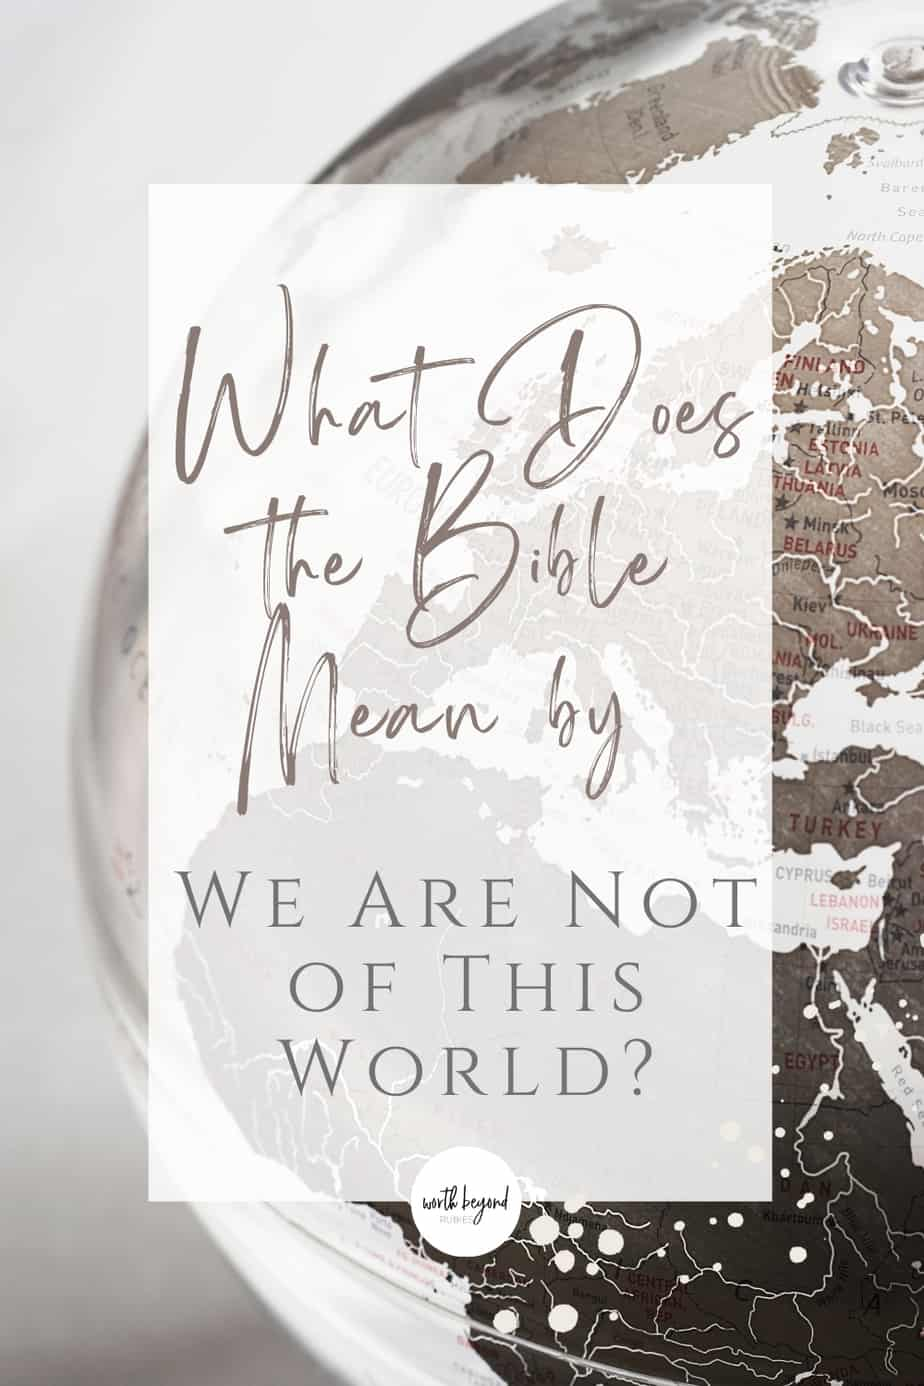 An image of a brown and white globe and text that says What Does the Bible Mean by We Are Not of This World?